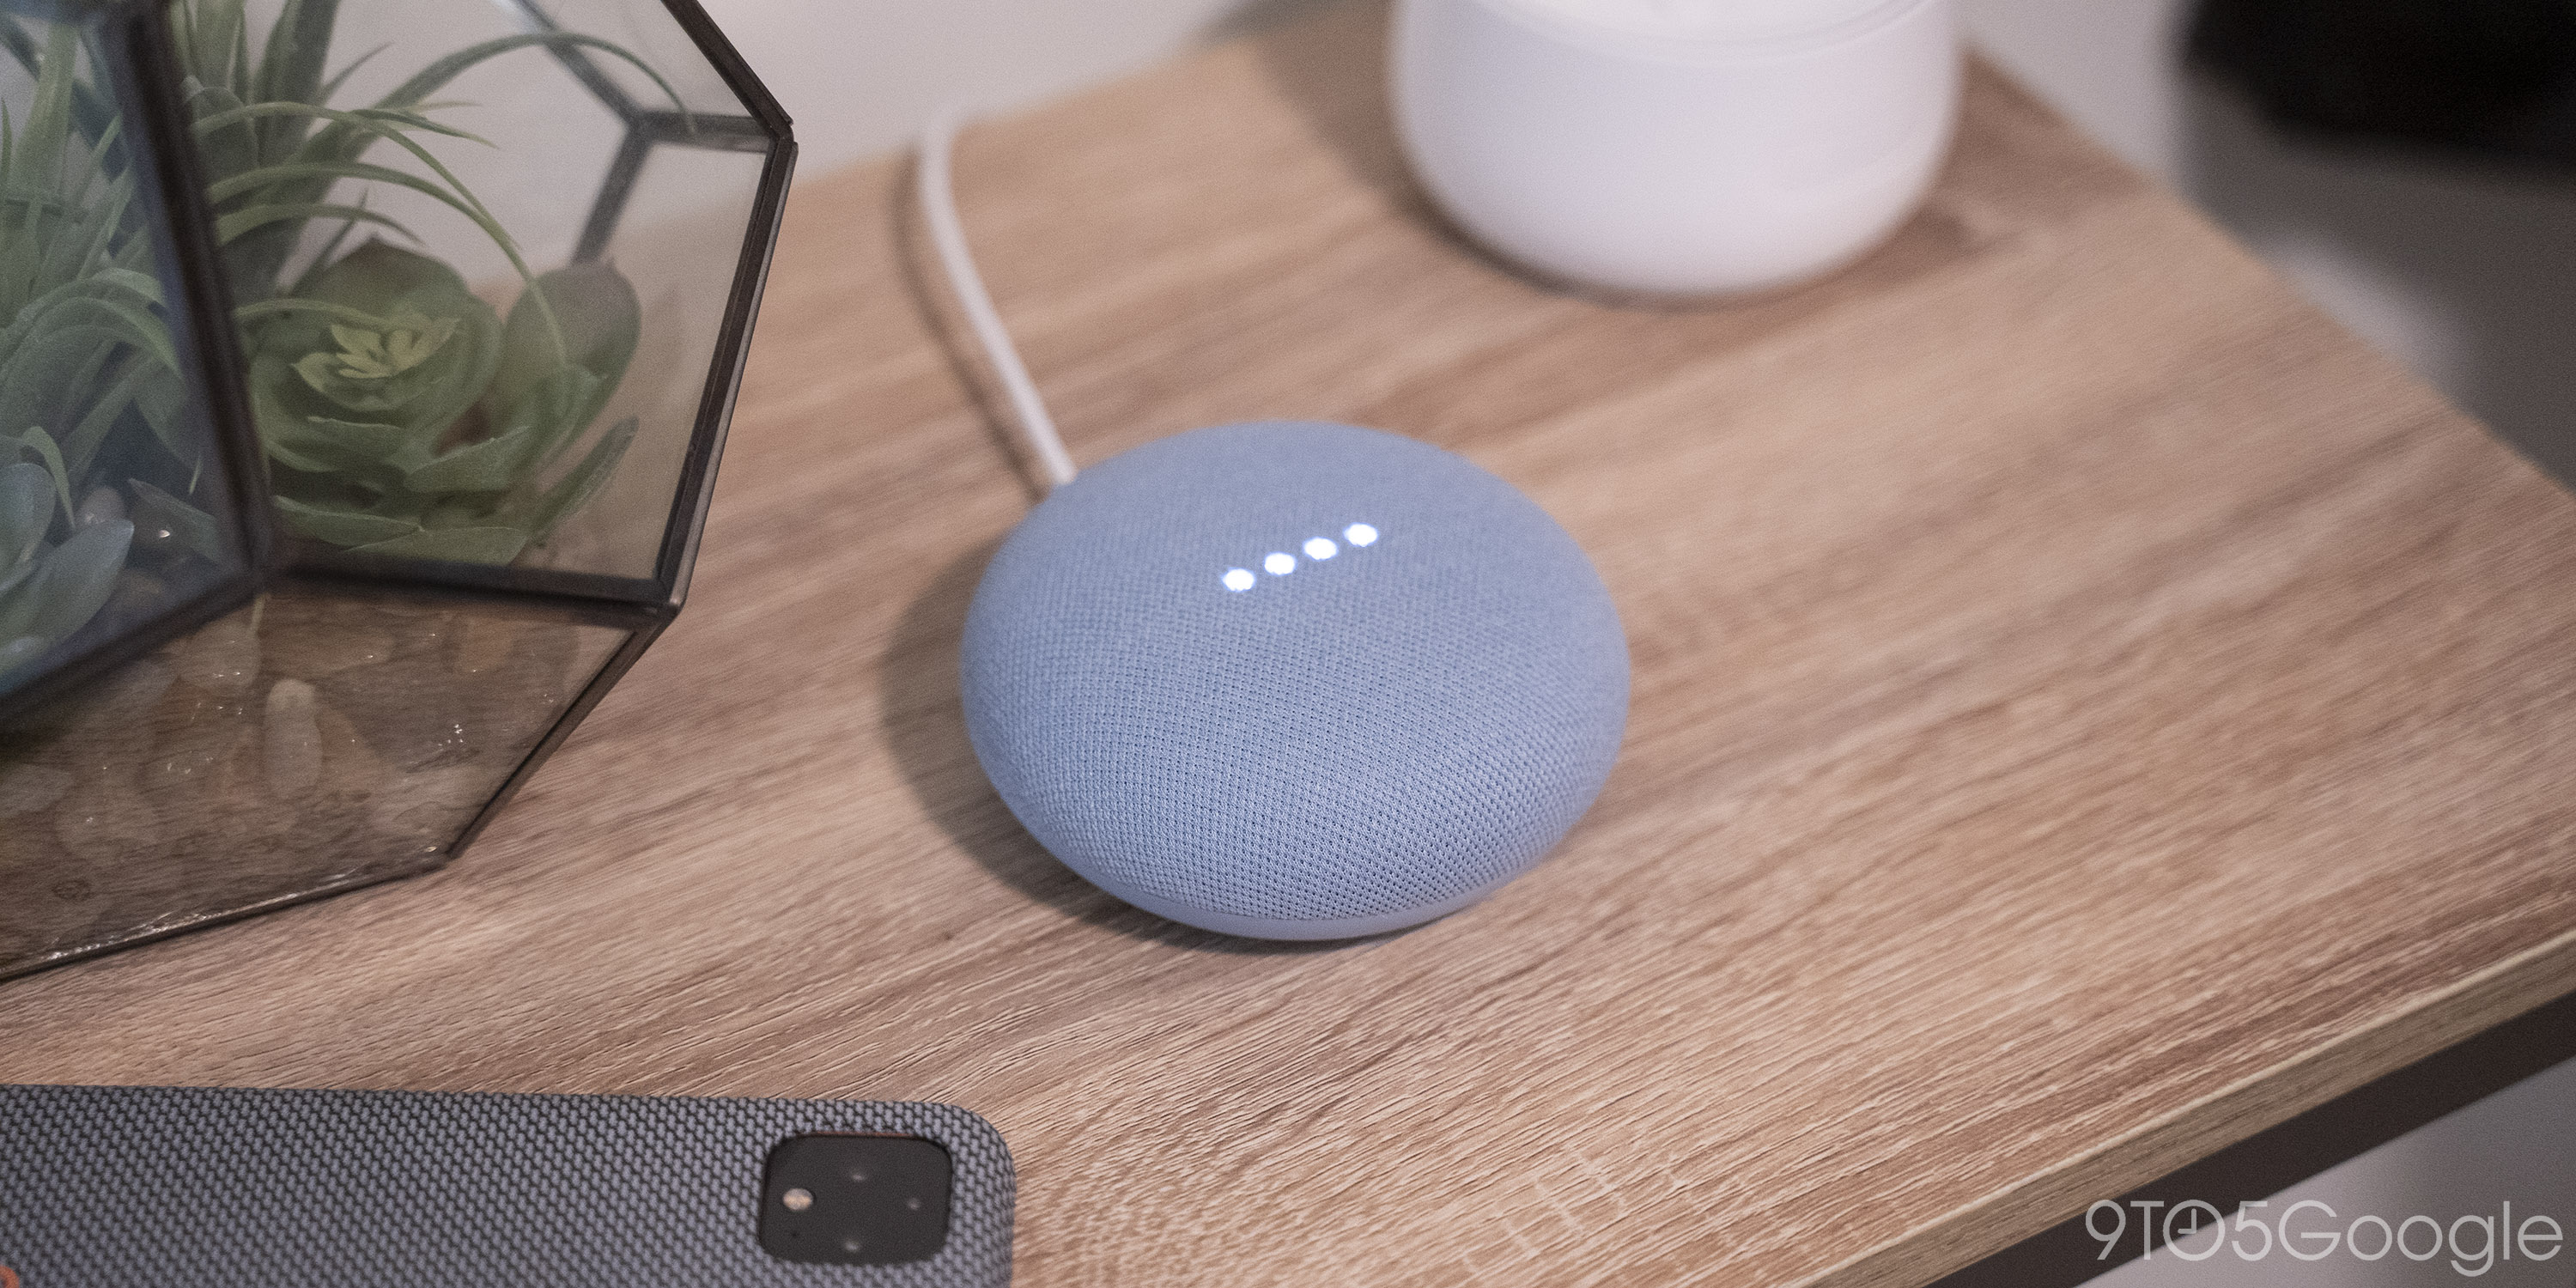 Google Nest Cyber Monday Smart Speakers Displays More 9to5toys